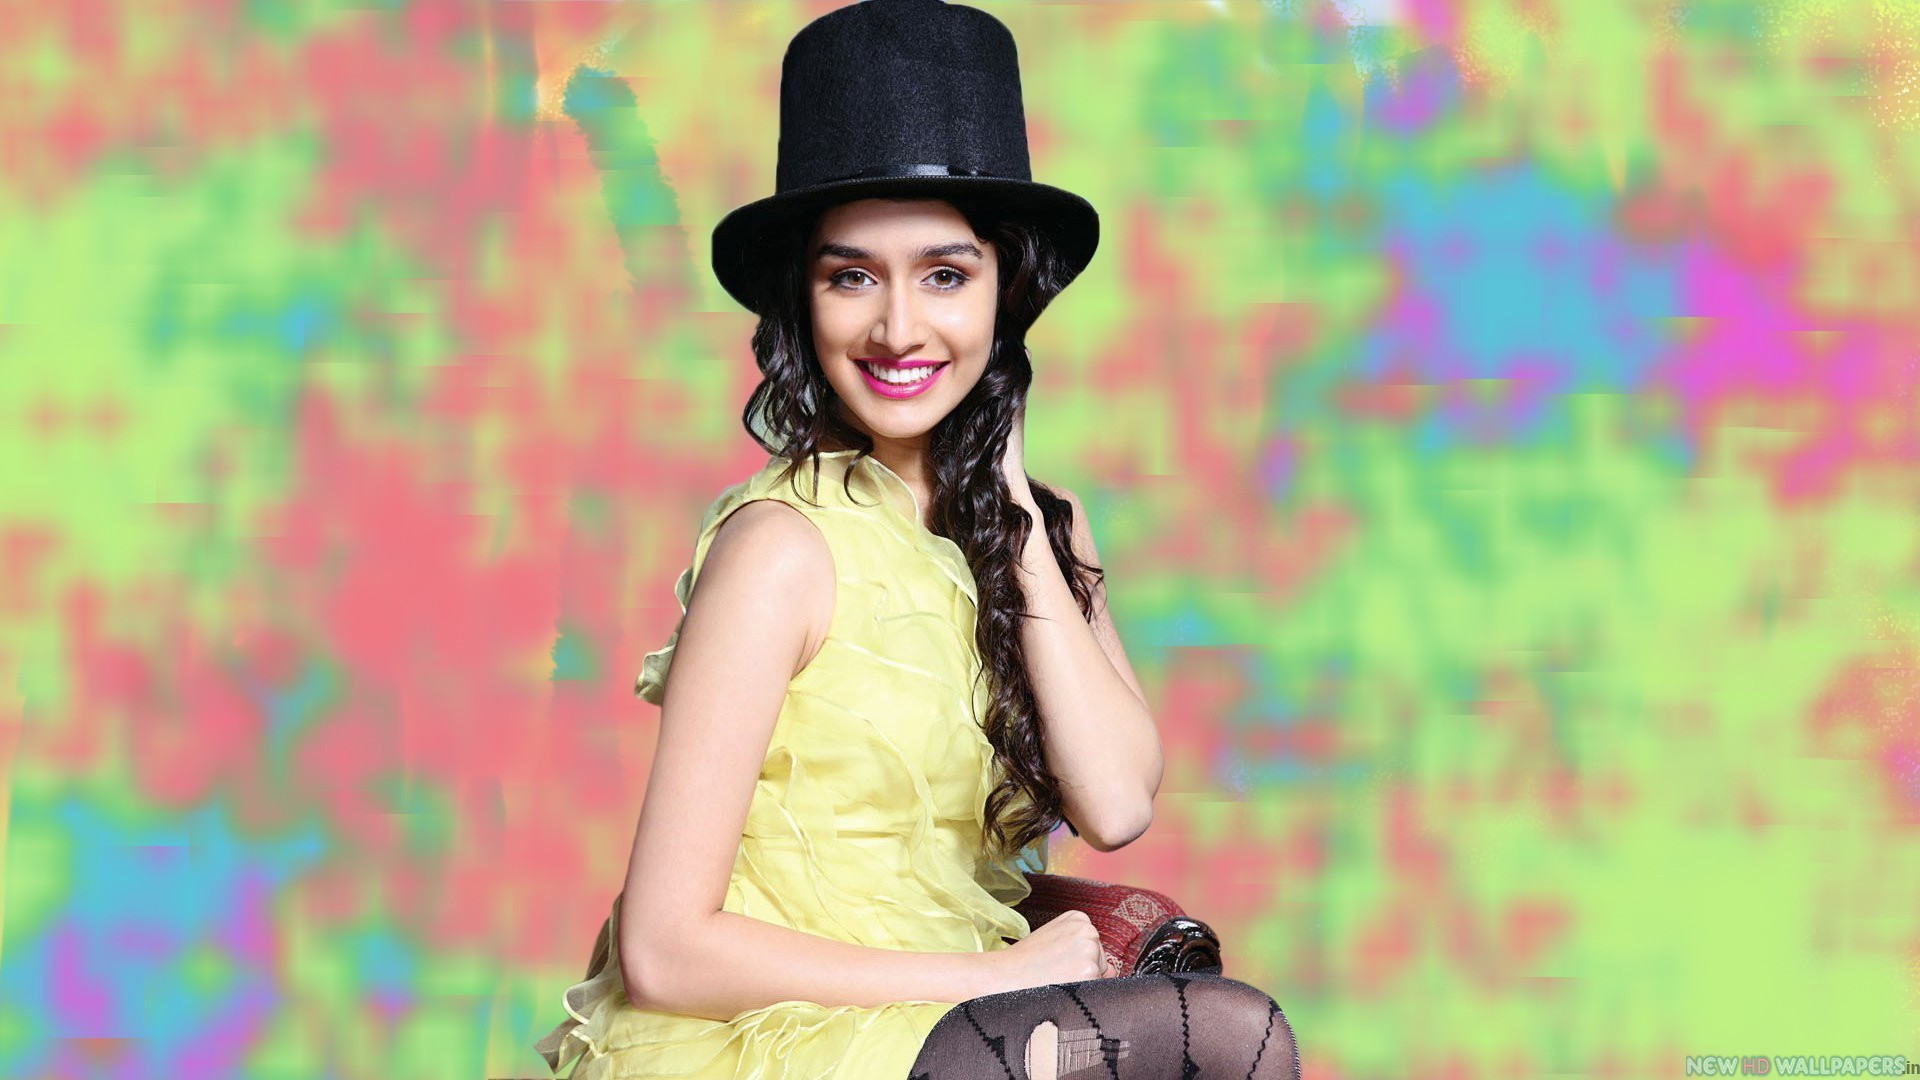 shraddha-kapoor-latest-stylish-cap-Images-webstudy.pk